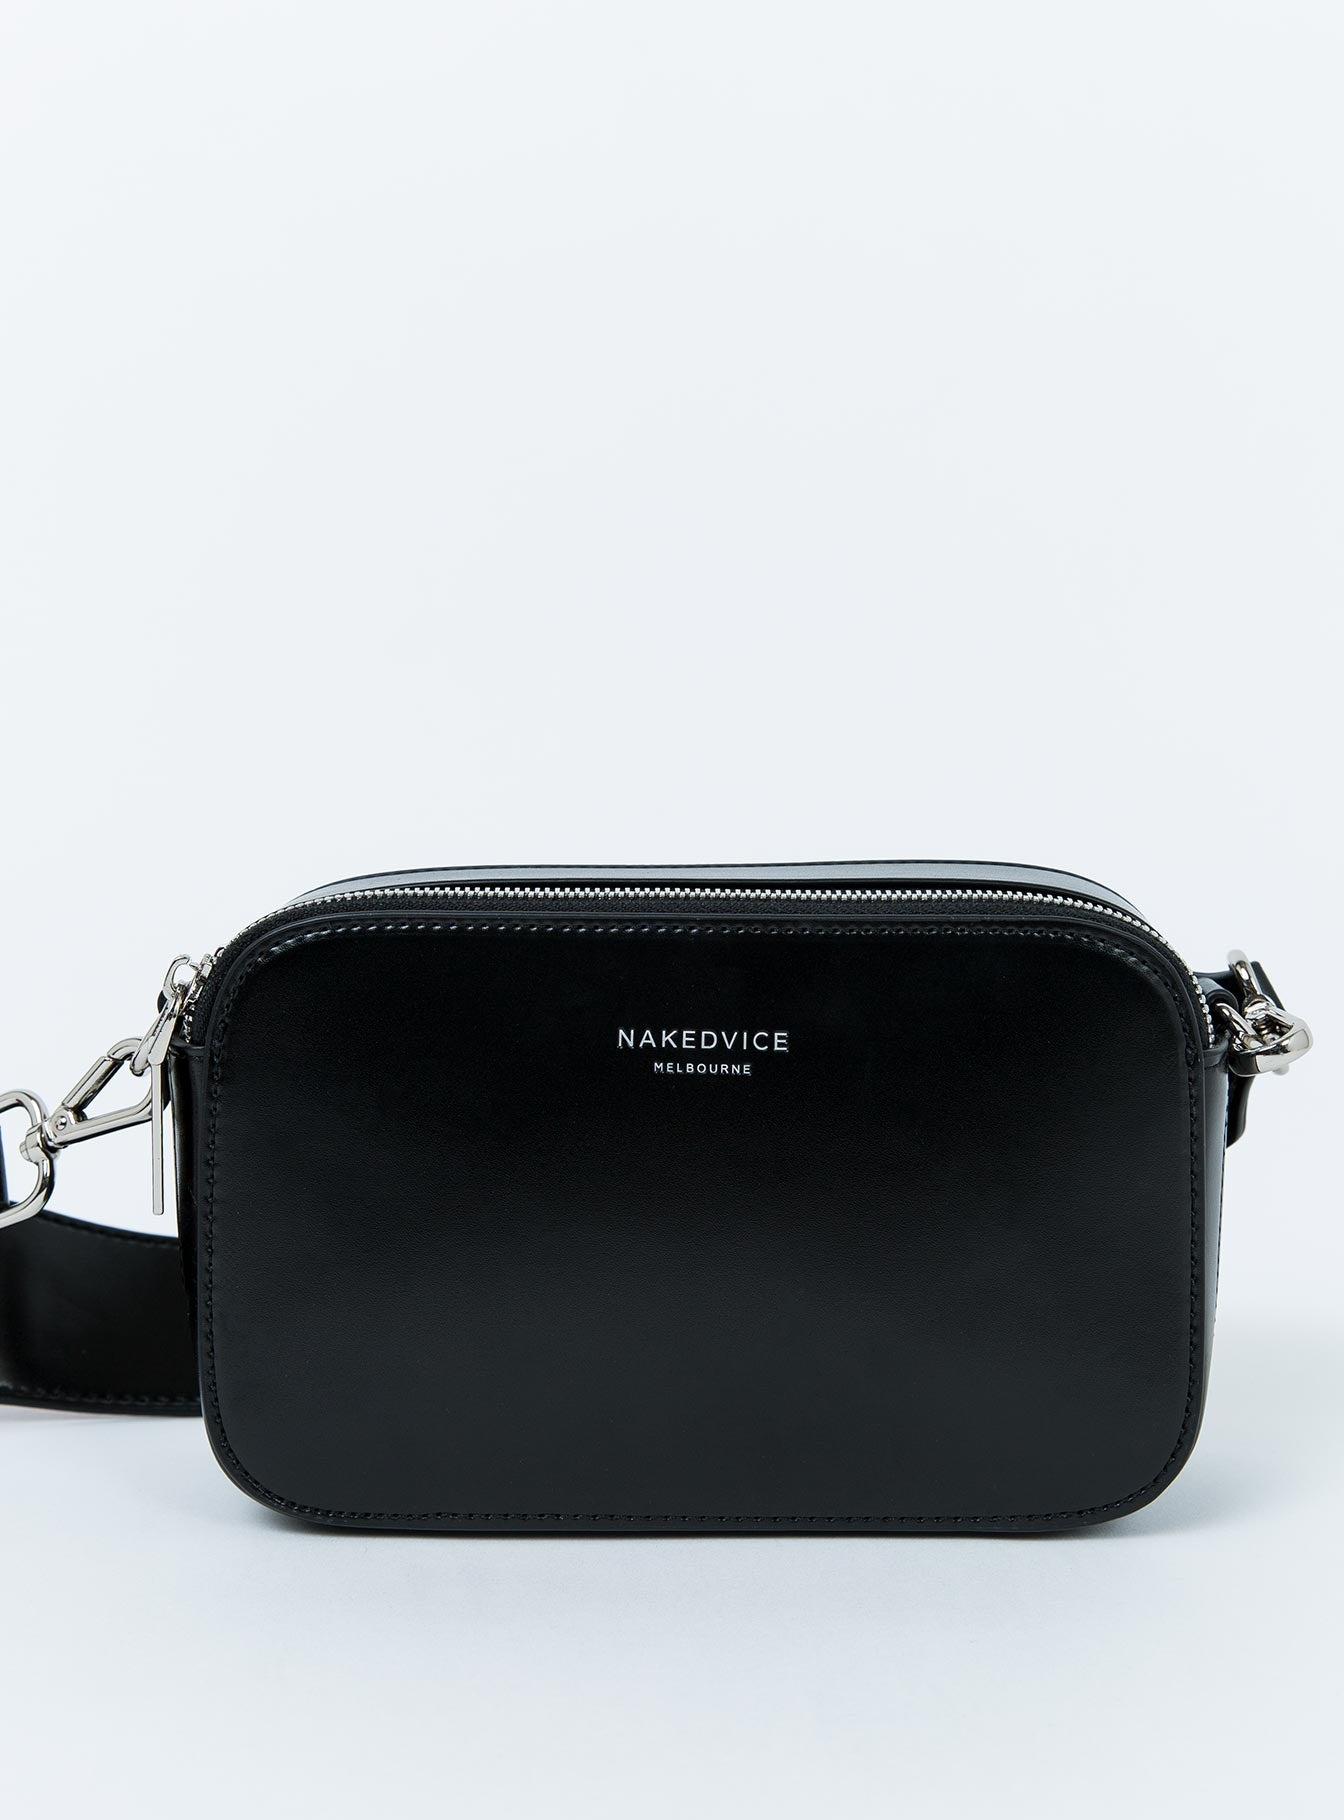 Nakedvice The Met Bag Black